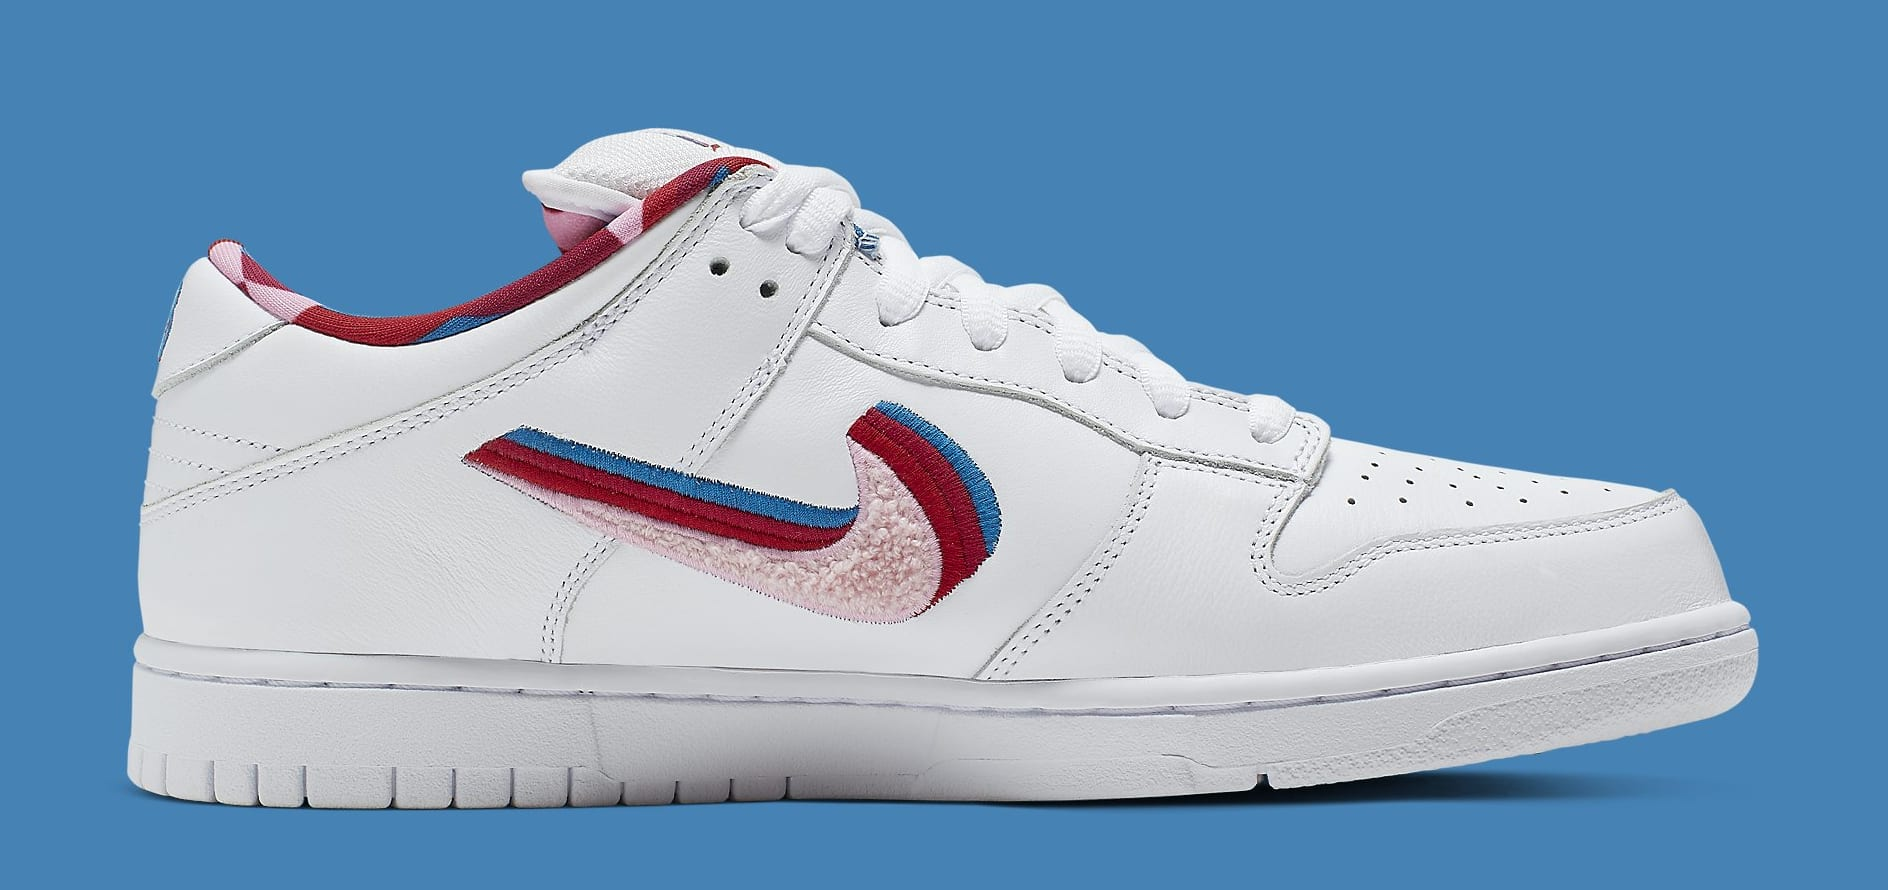 castillo Despertar ozono  Parra x Nike SB Dunk Low Release Date | Sole Collector